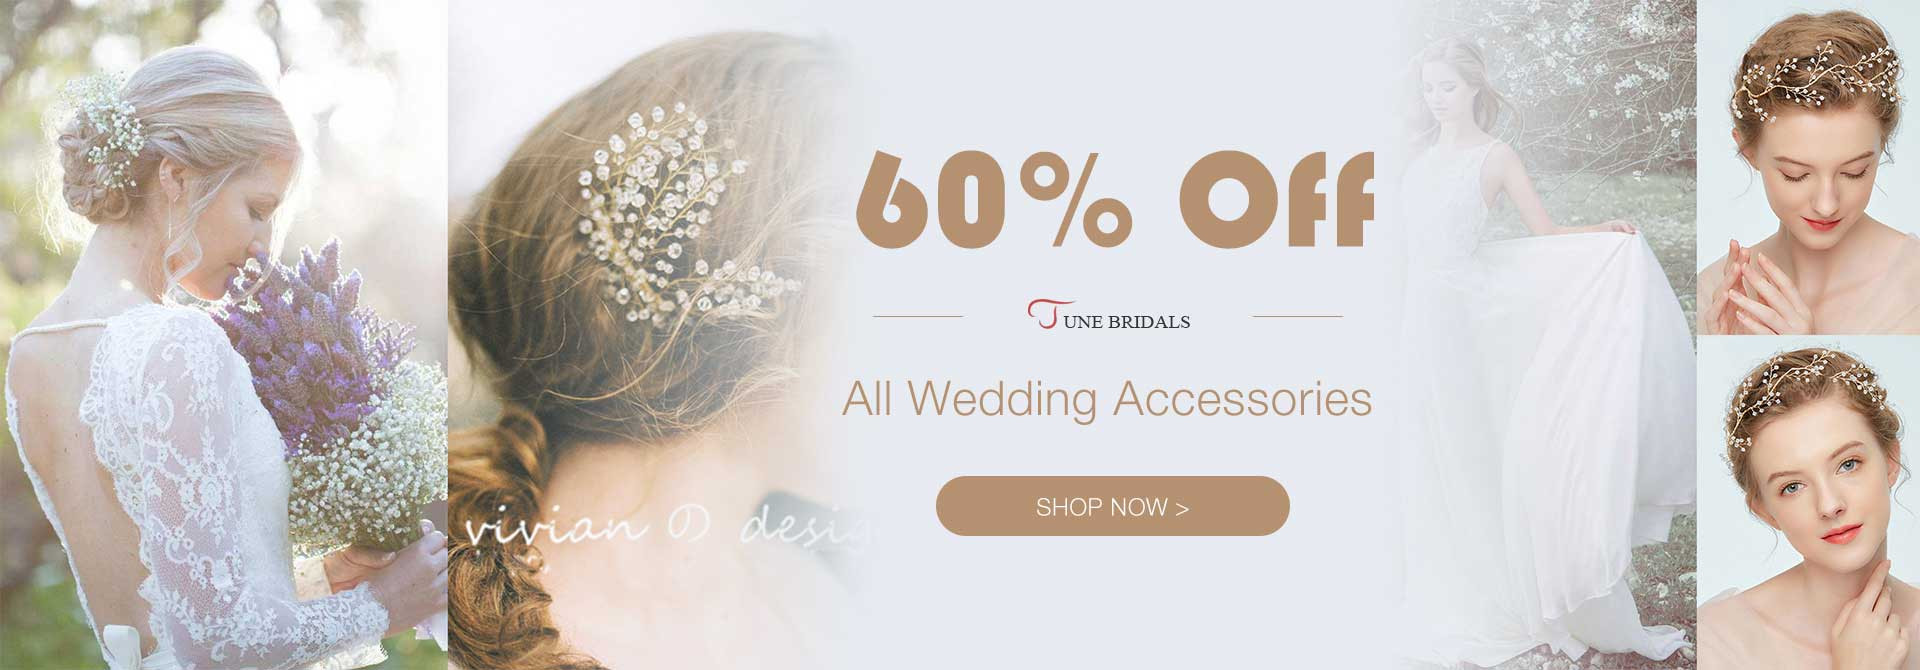 60% Off All Wedding Accessories